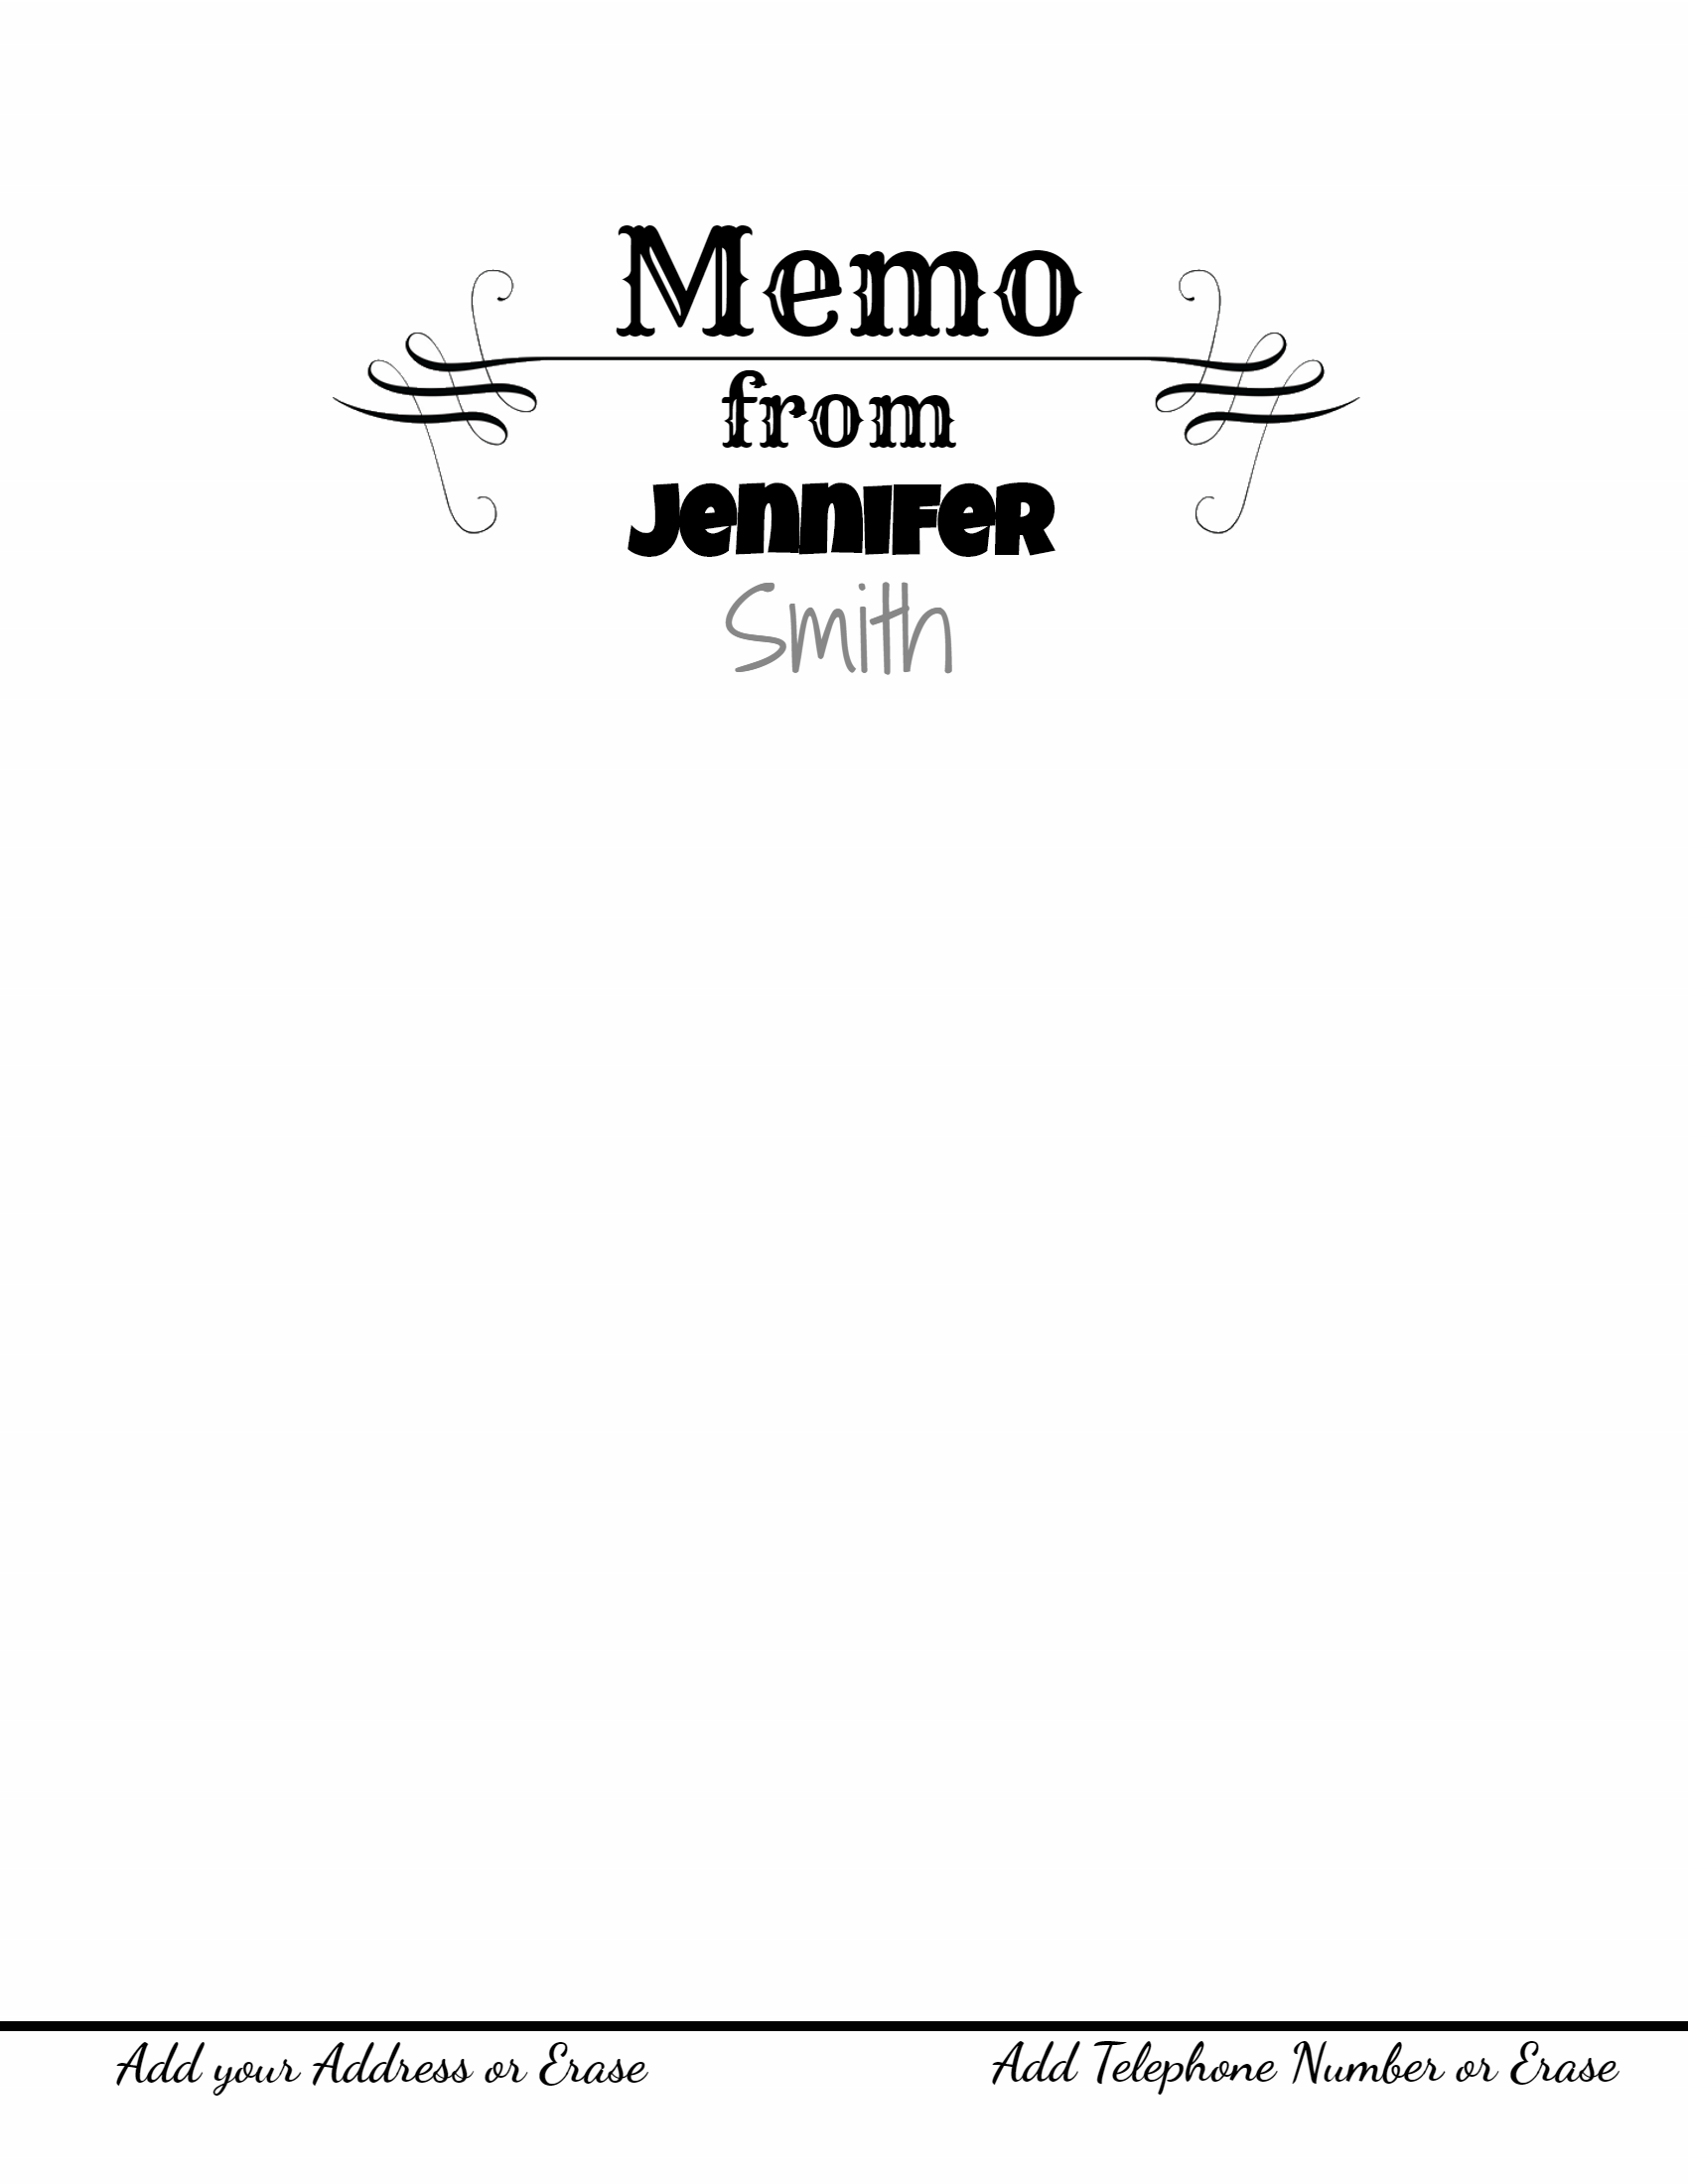 Free Printable Stationery Templates  Memo Templete